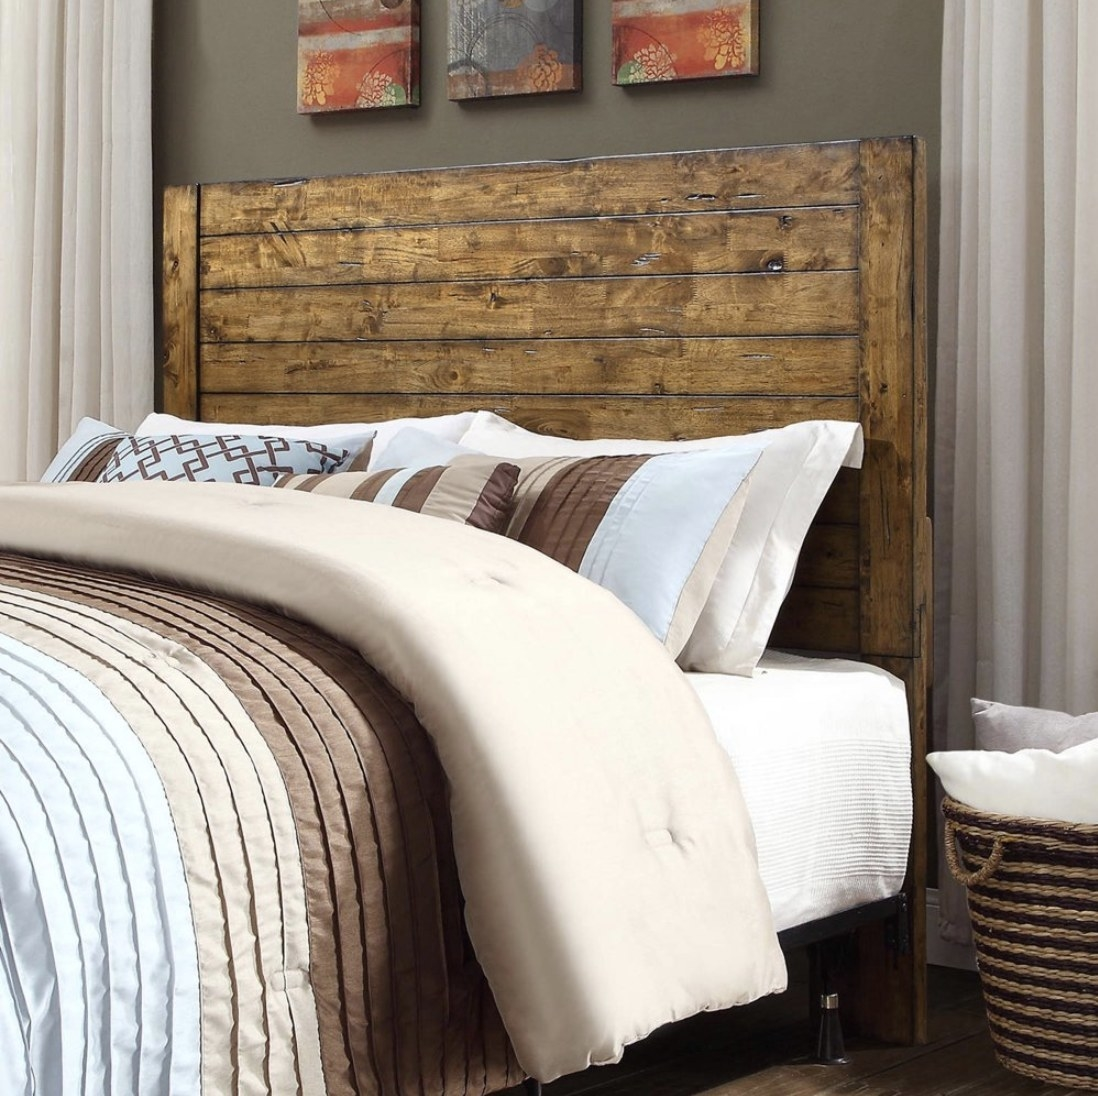 A rustic wood headboard installed behind a bed in a bedroom